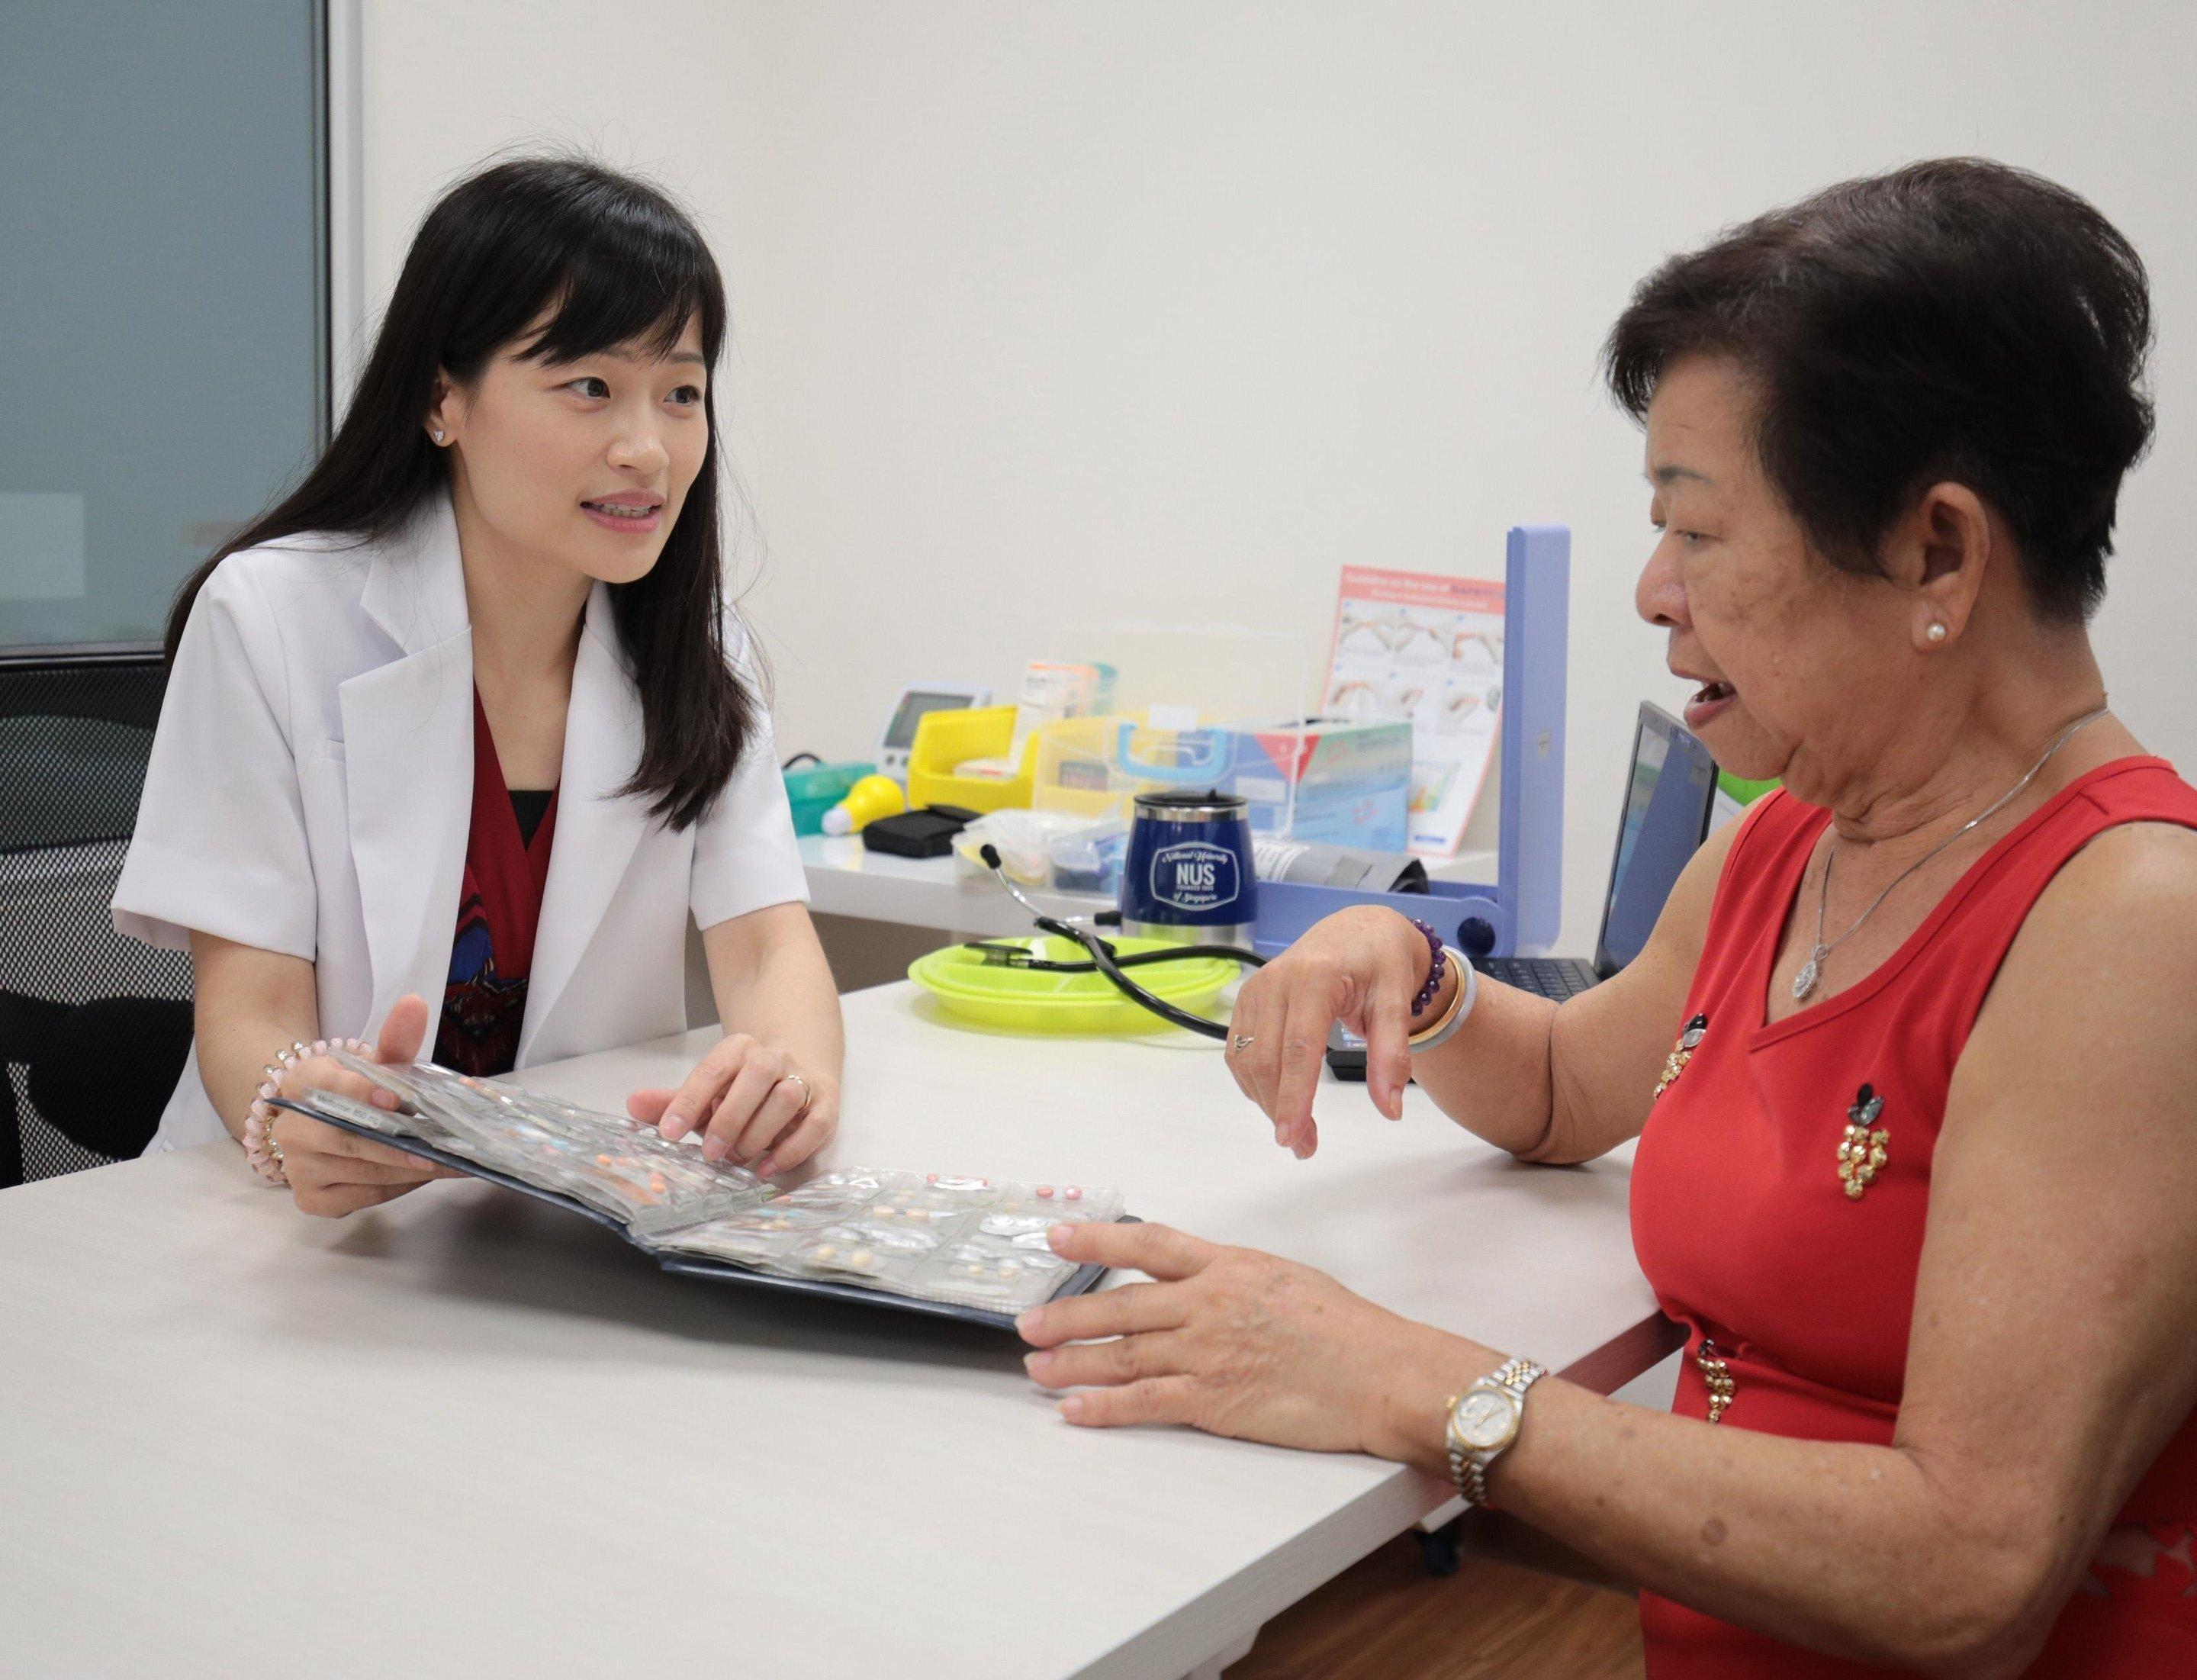 Pharmacist Follow-ups Cut Diabetes Costs And Reduce Health Risks